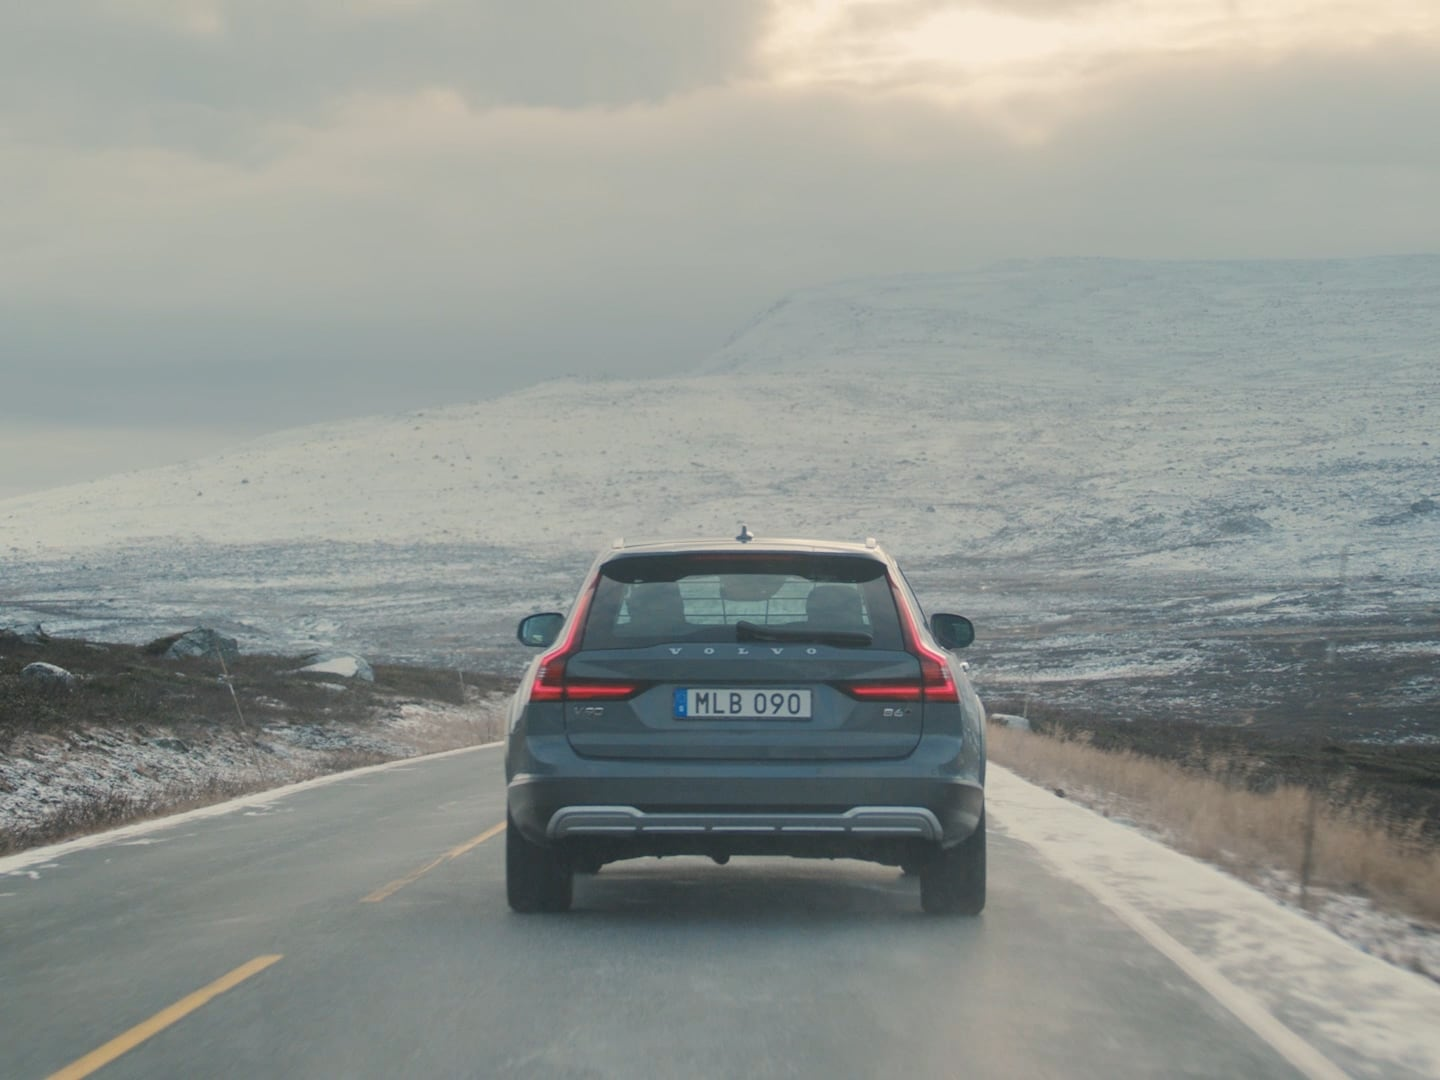 A grey V90 Cross Country on the road